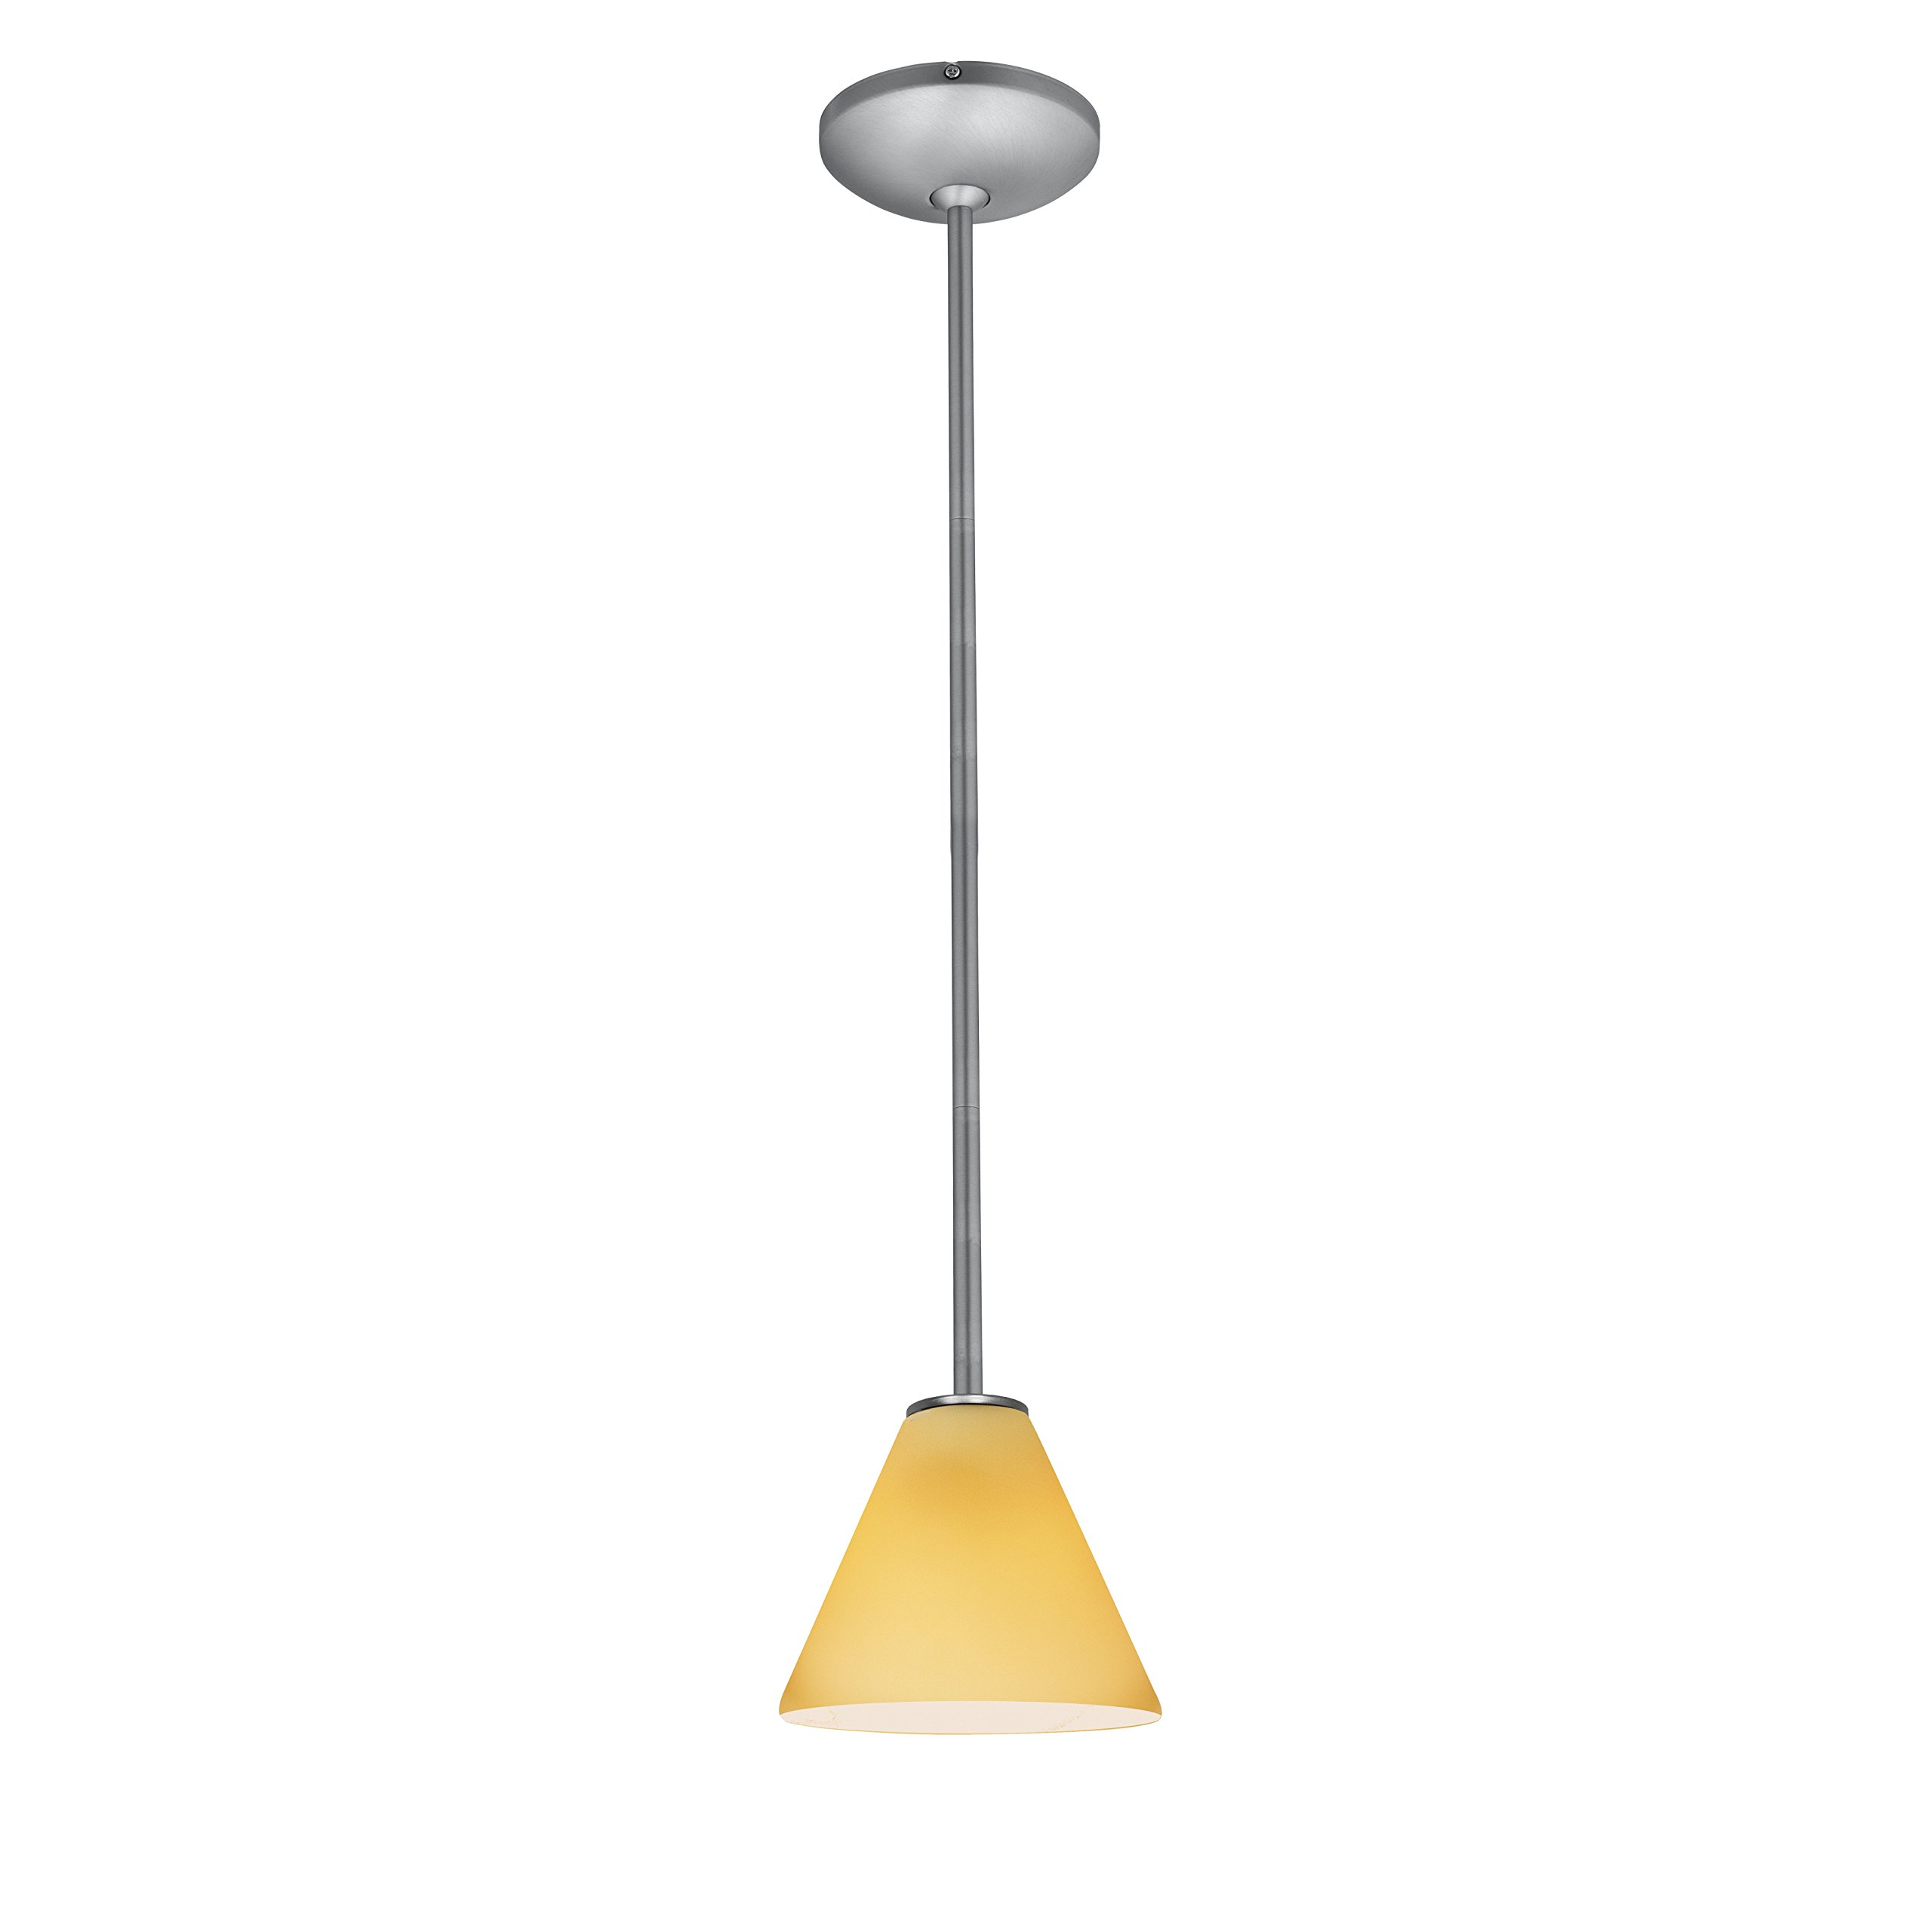 Martini - E26 LED Rod Pendant - Brushed Steel Finish - Amber Glass Shade